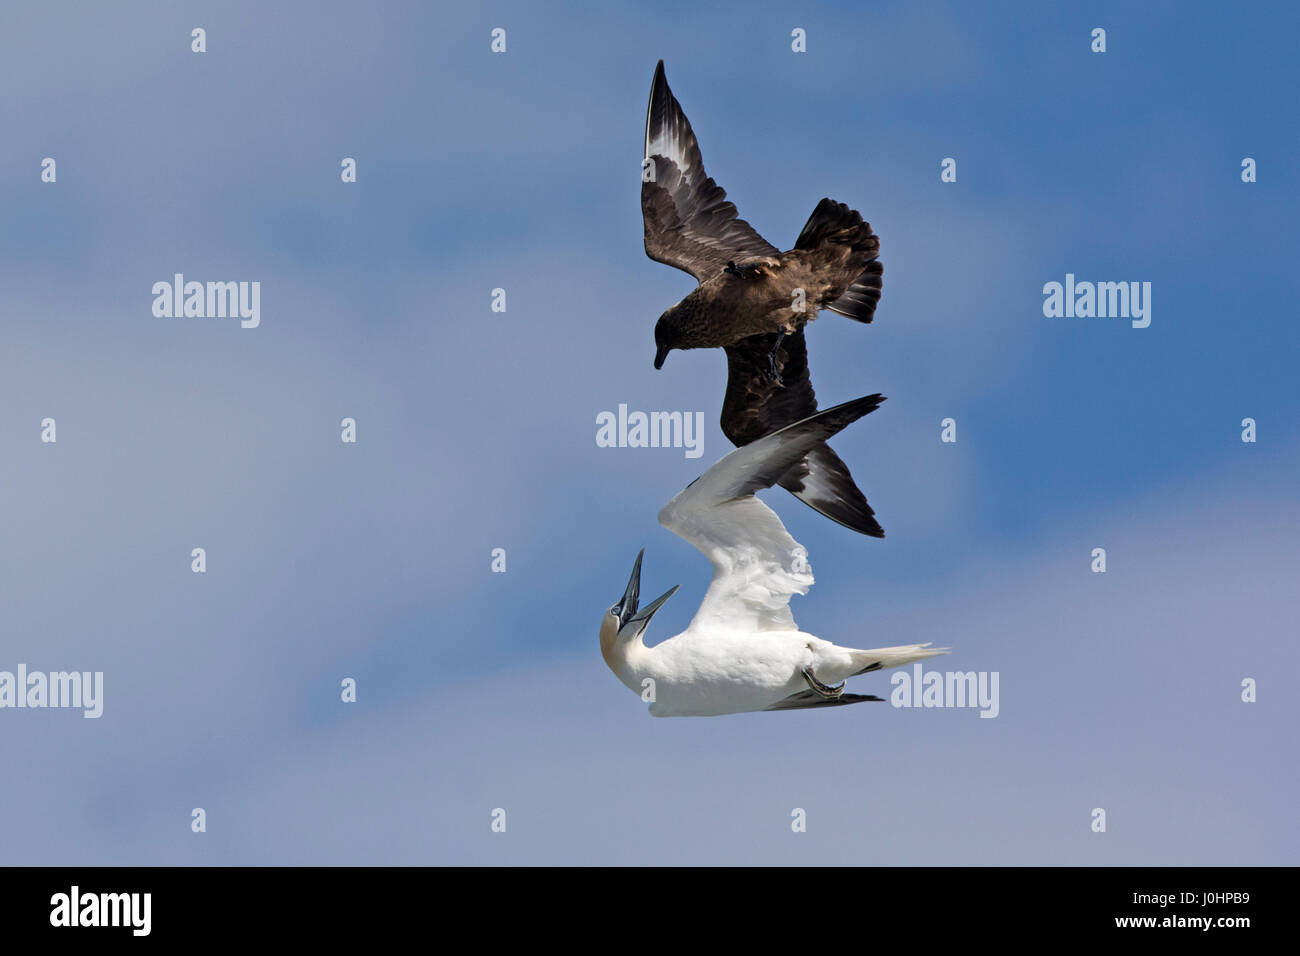 Great Skua Stercorarius skua attacking Gannet on route ack to its colony, to make it disgorge fish, behaviour known - Stock Image